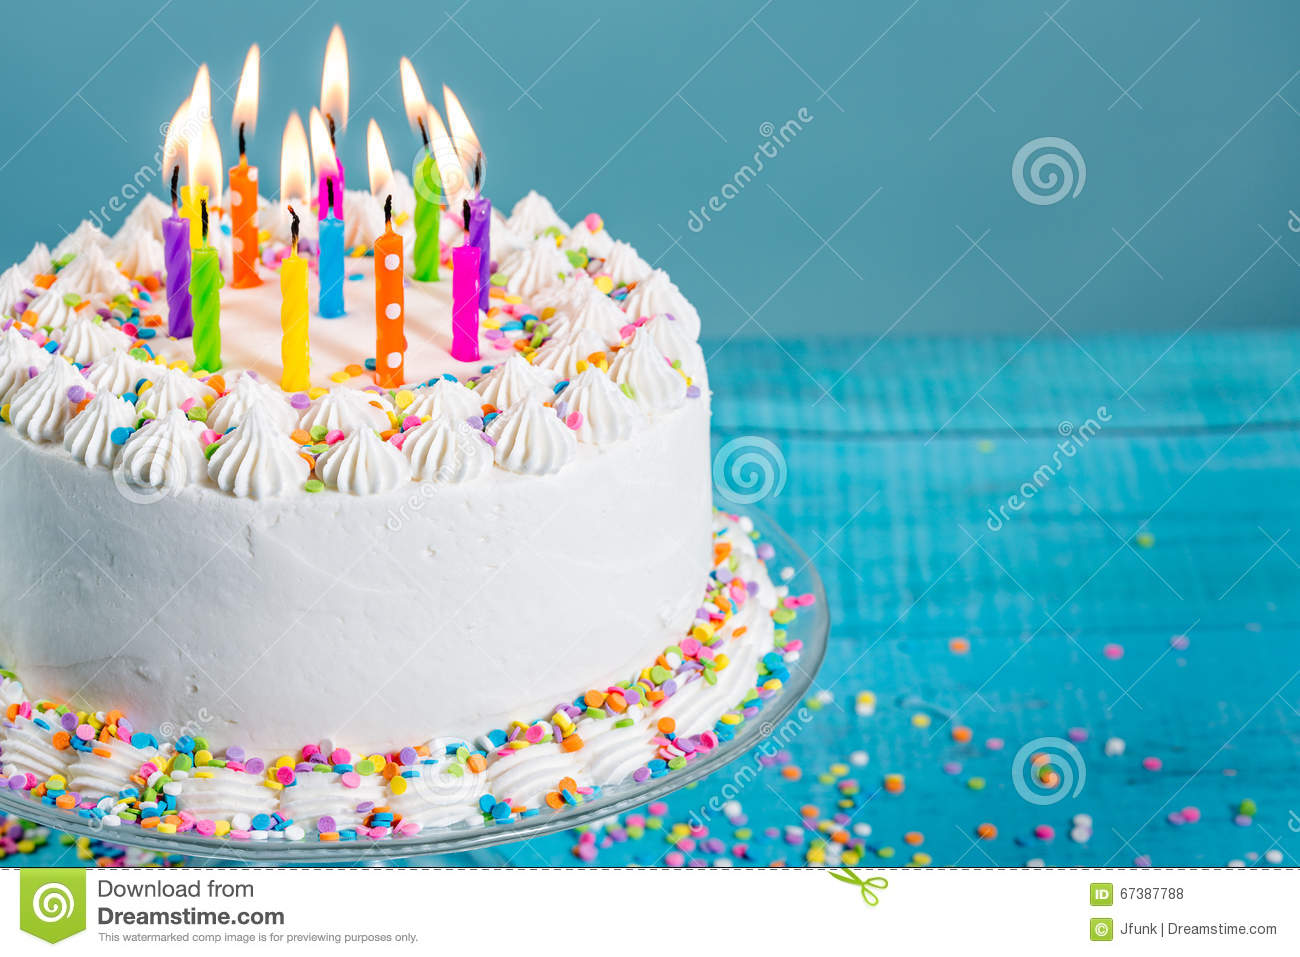 White Buttercream Icing Birthday Cake With Colorful Sprinkles And Candles Over Blue Background